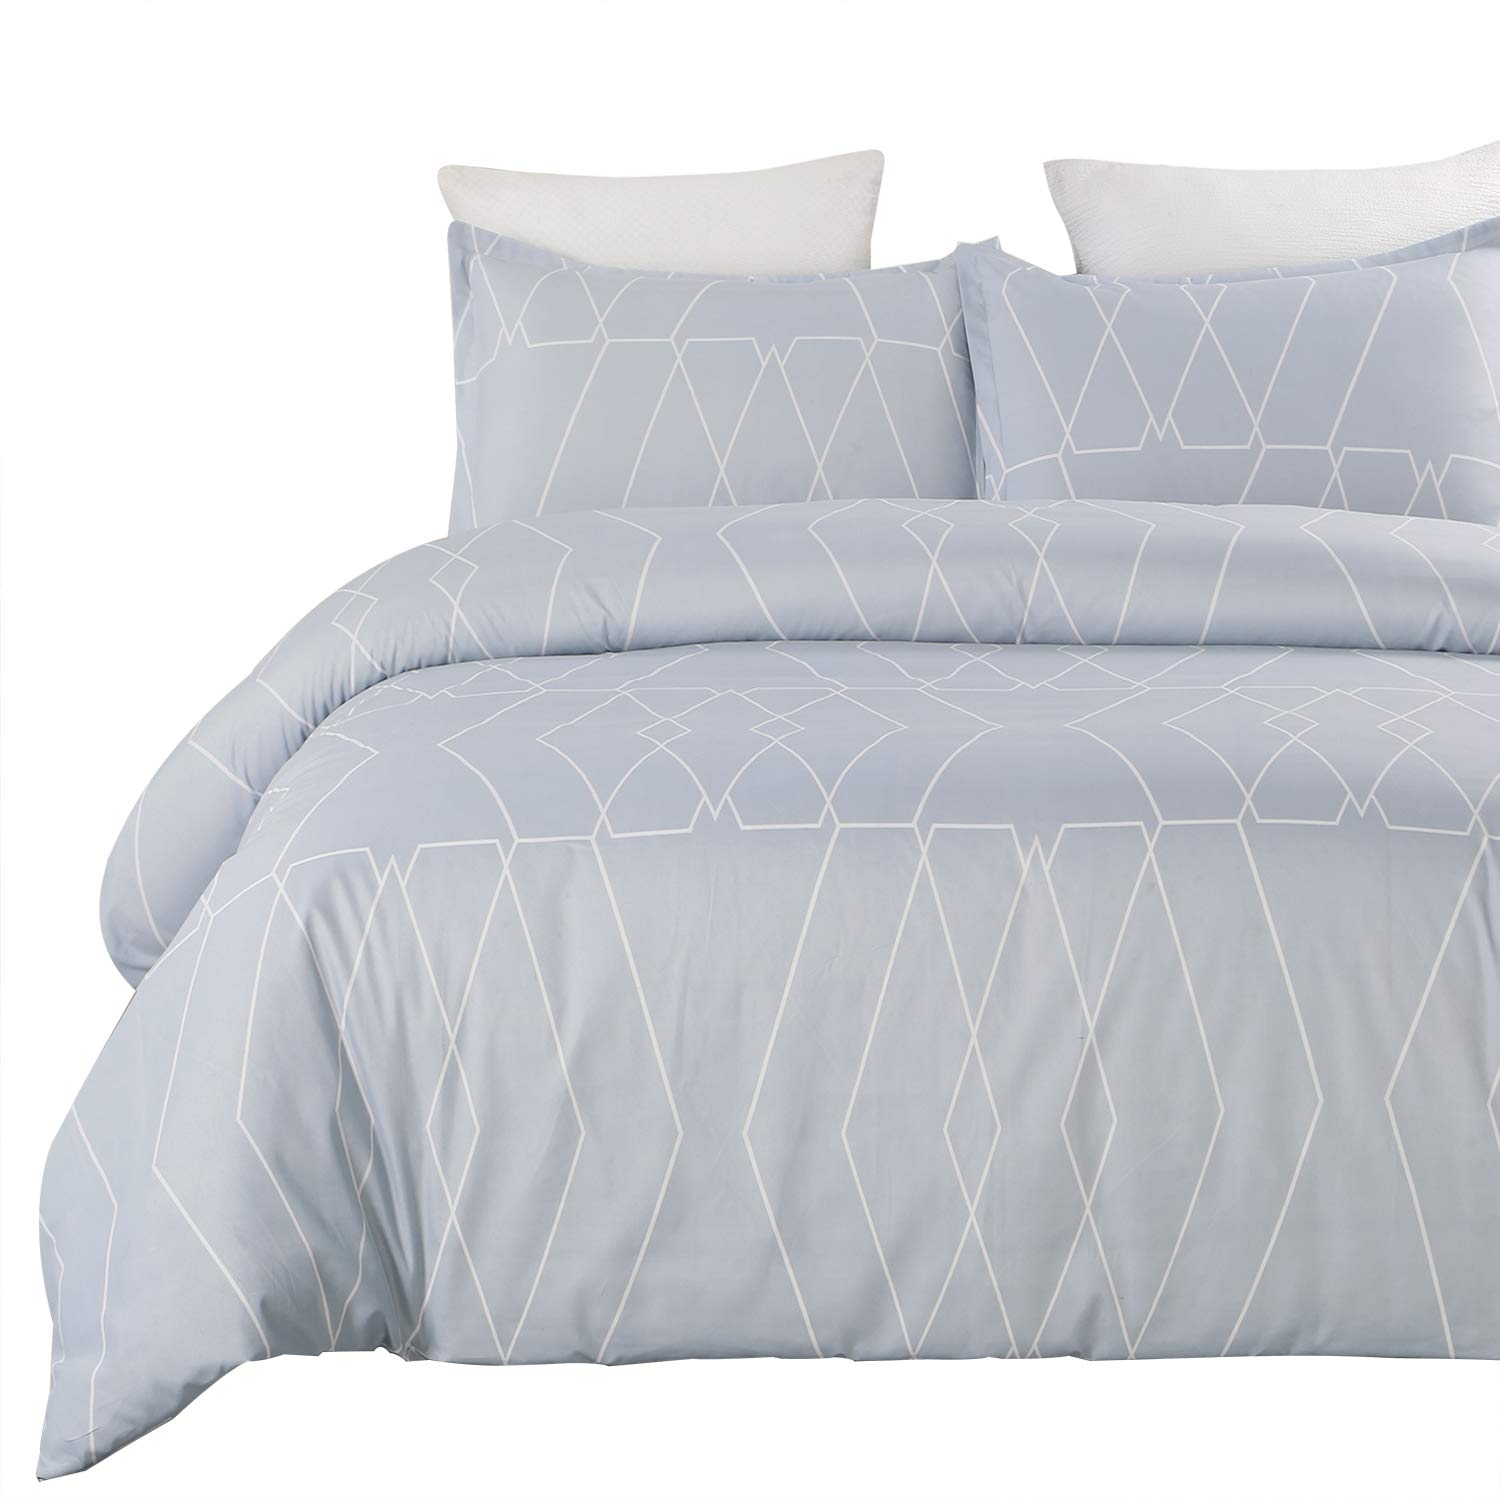 Vaulia Lightweight Microfiber Duvet Cover Set, Geometric Pattern Design, Spa Blue - Queen Size